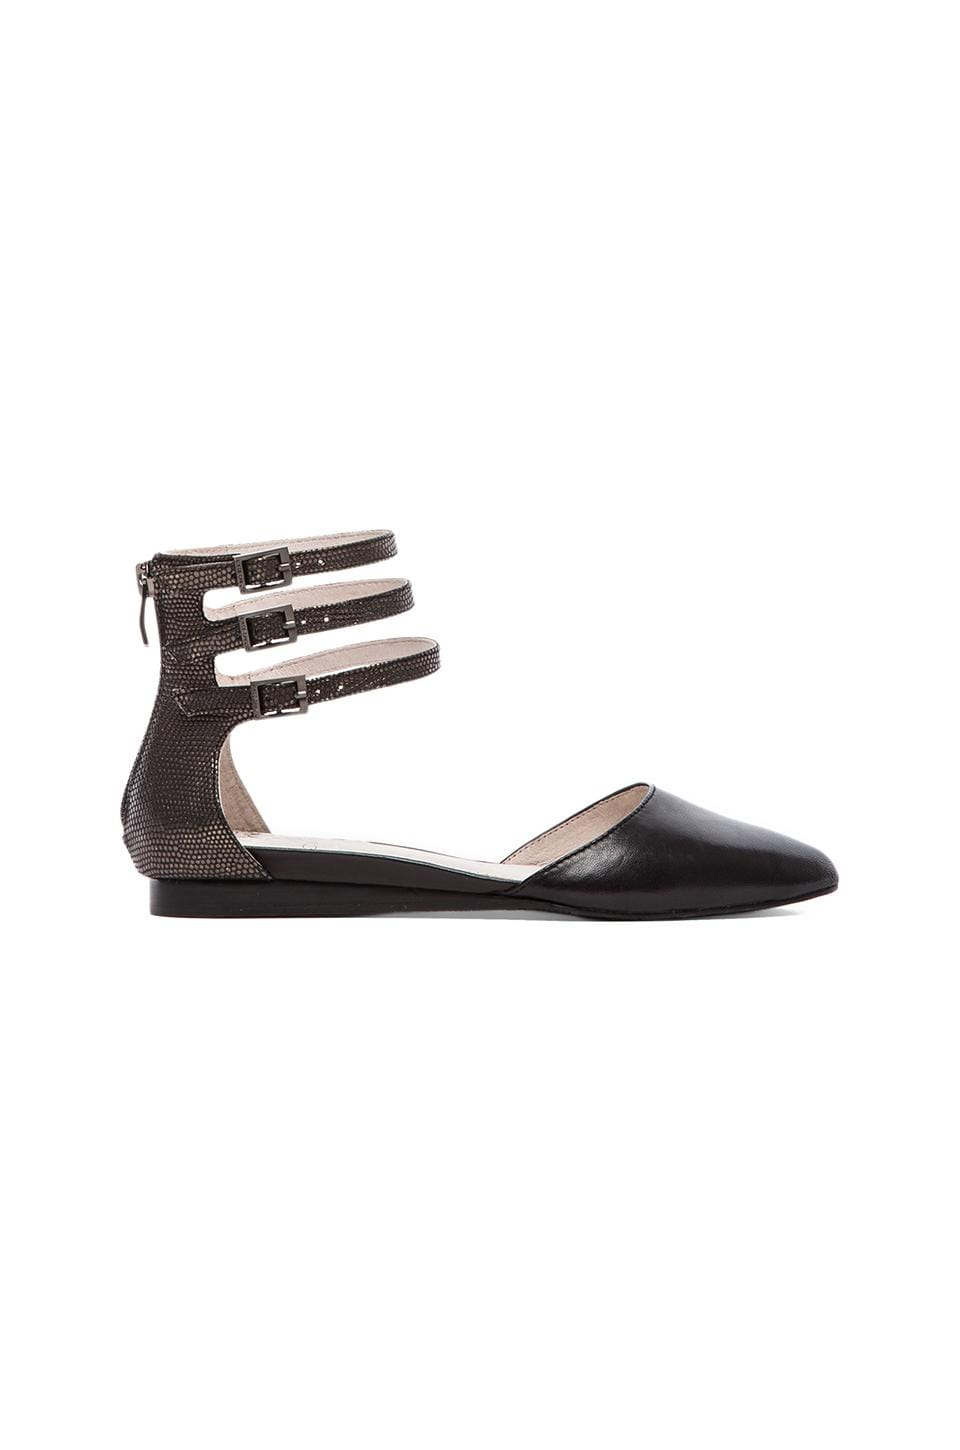 Vince Camuto Wiji Flat in Black & Pewter